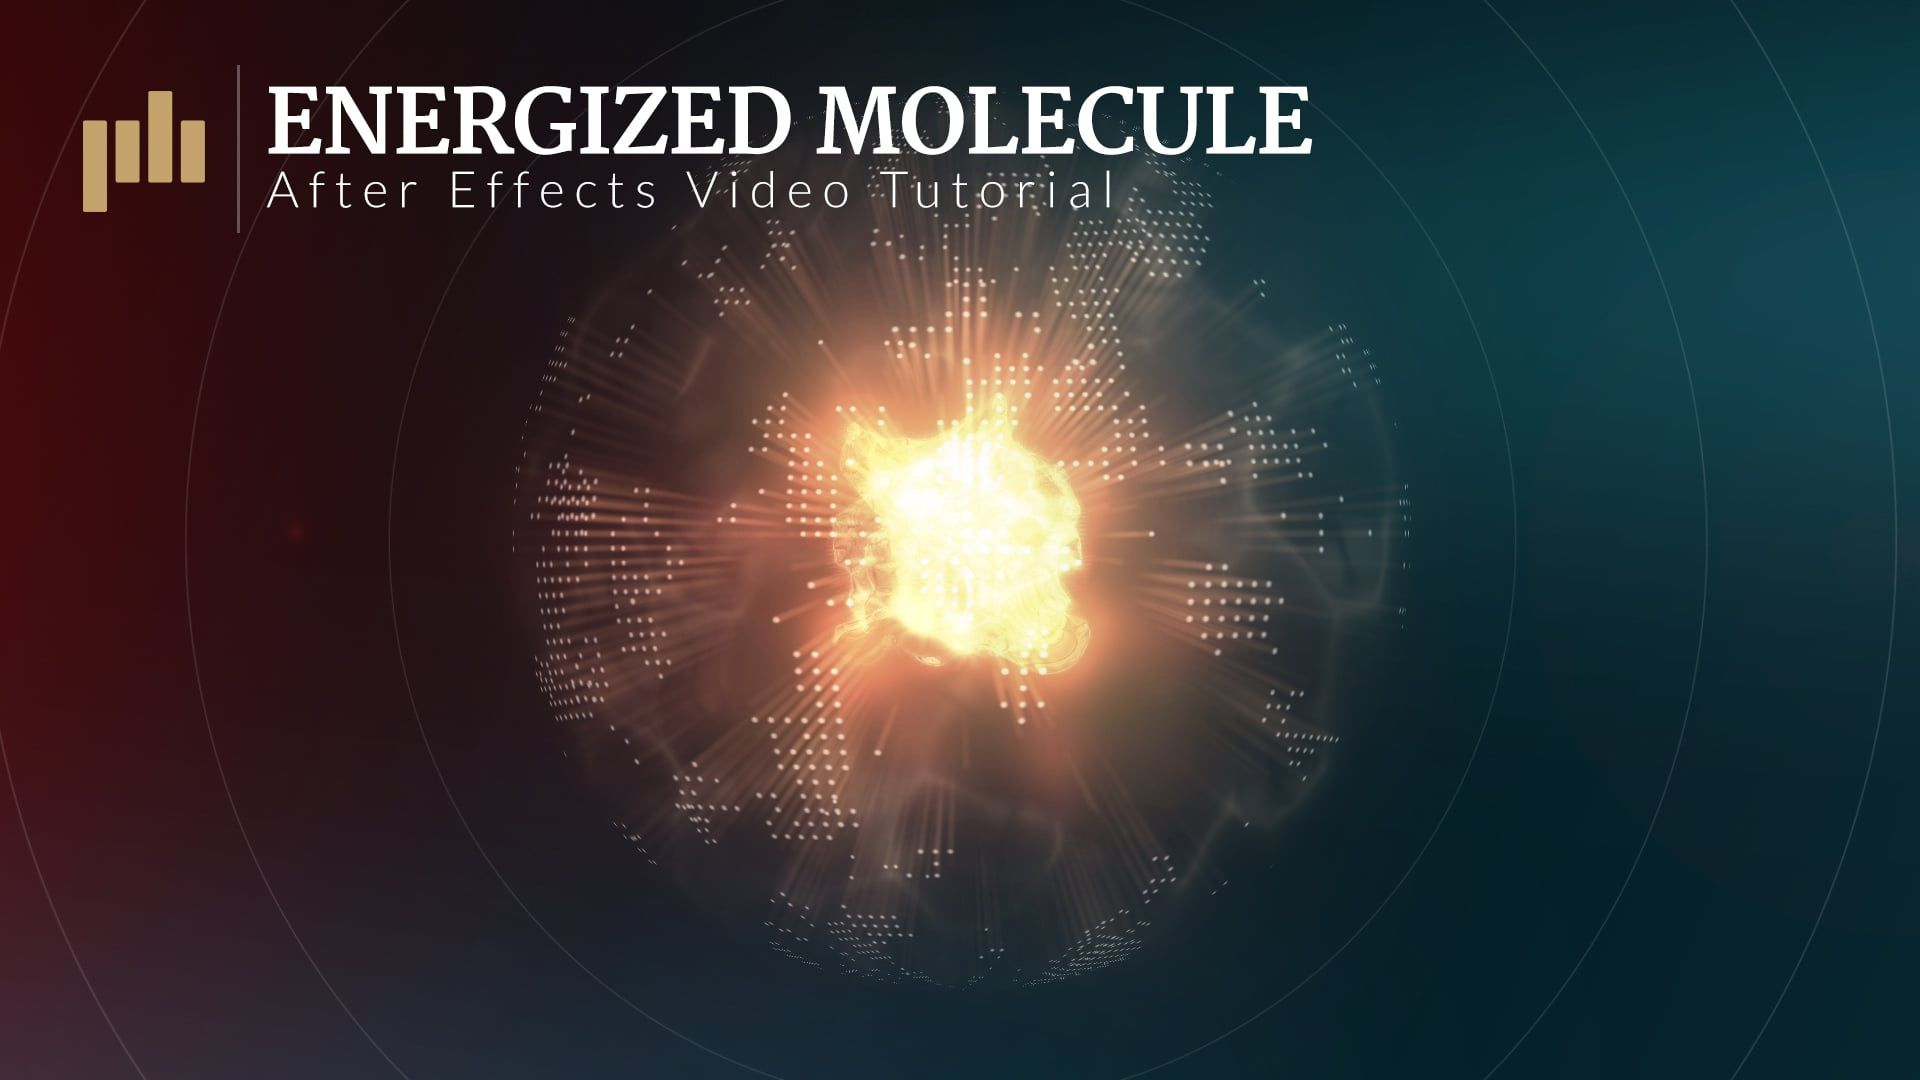 A look at the stardust plugin for after effects in comparison to a look at the stardust plugin for after effects in comparison to the trapcode suite this is the second explainer video ive ever made so i hope y baditri Images